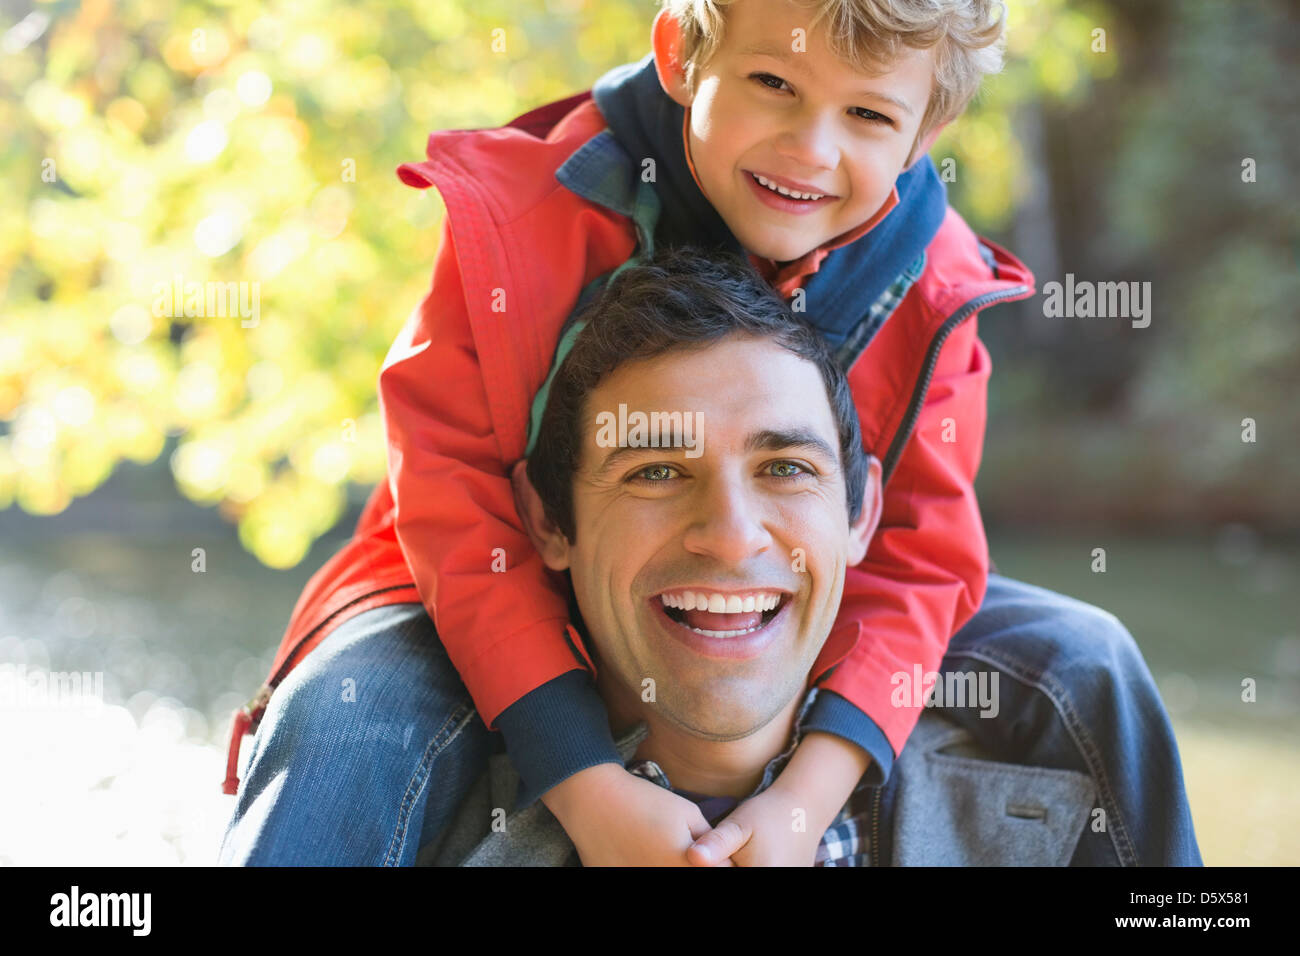 Father carrying son on shoulders in park Banque D'Images